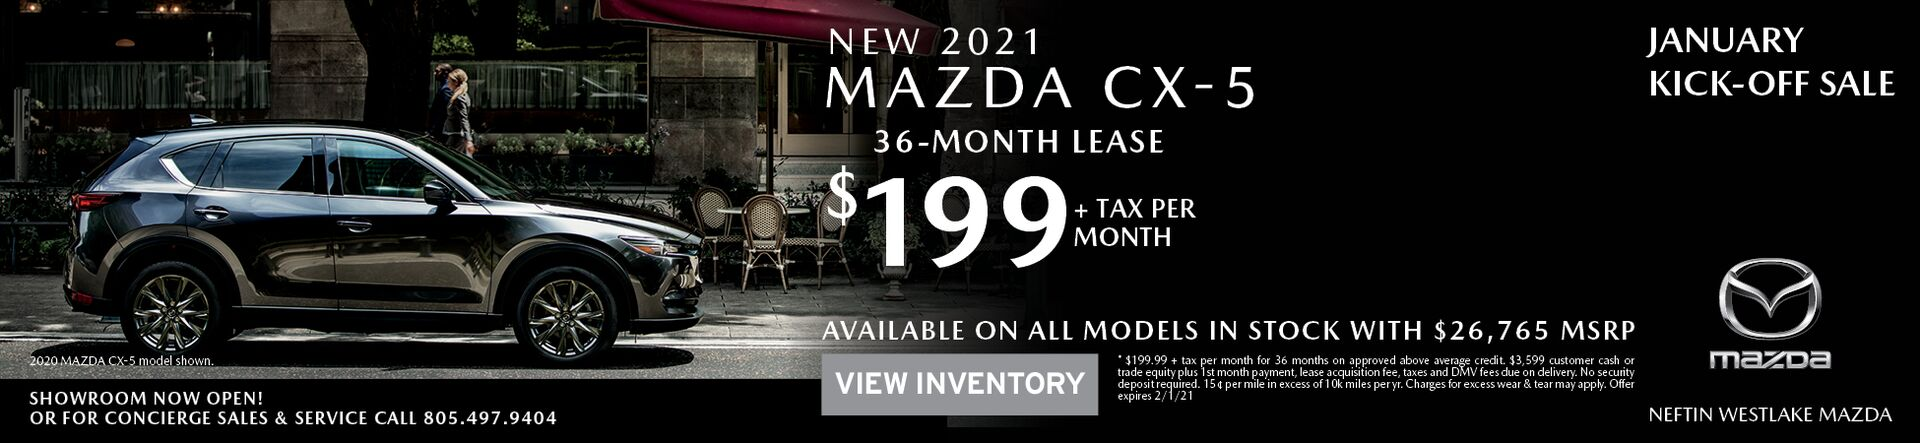 January '21 CX-5 Lease Offer